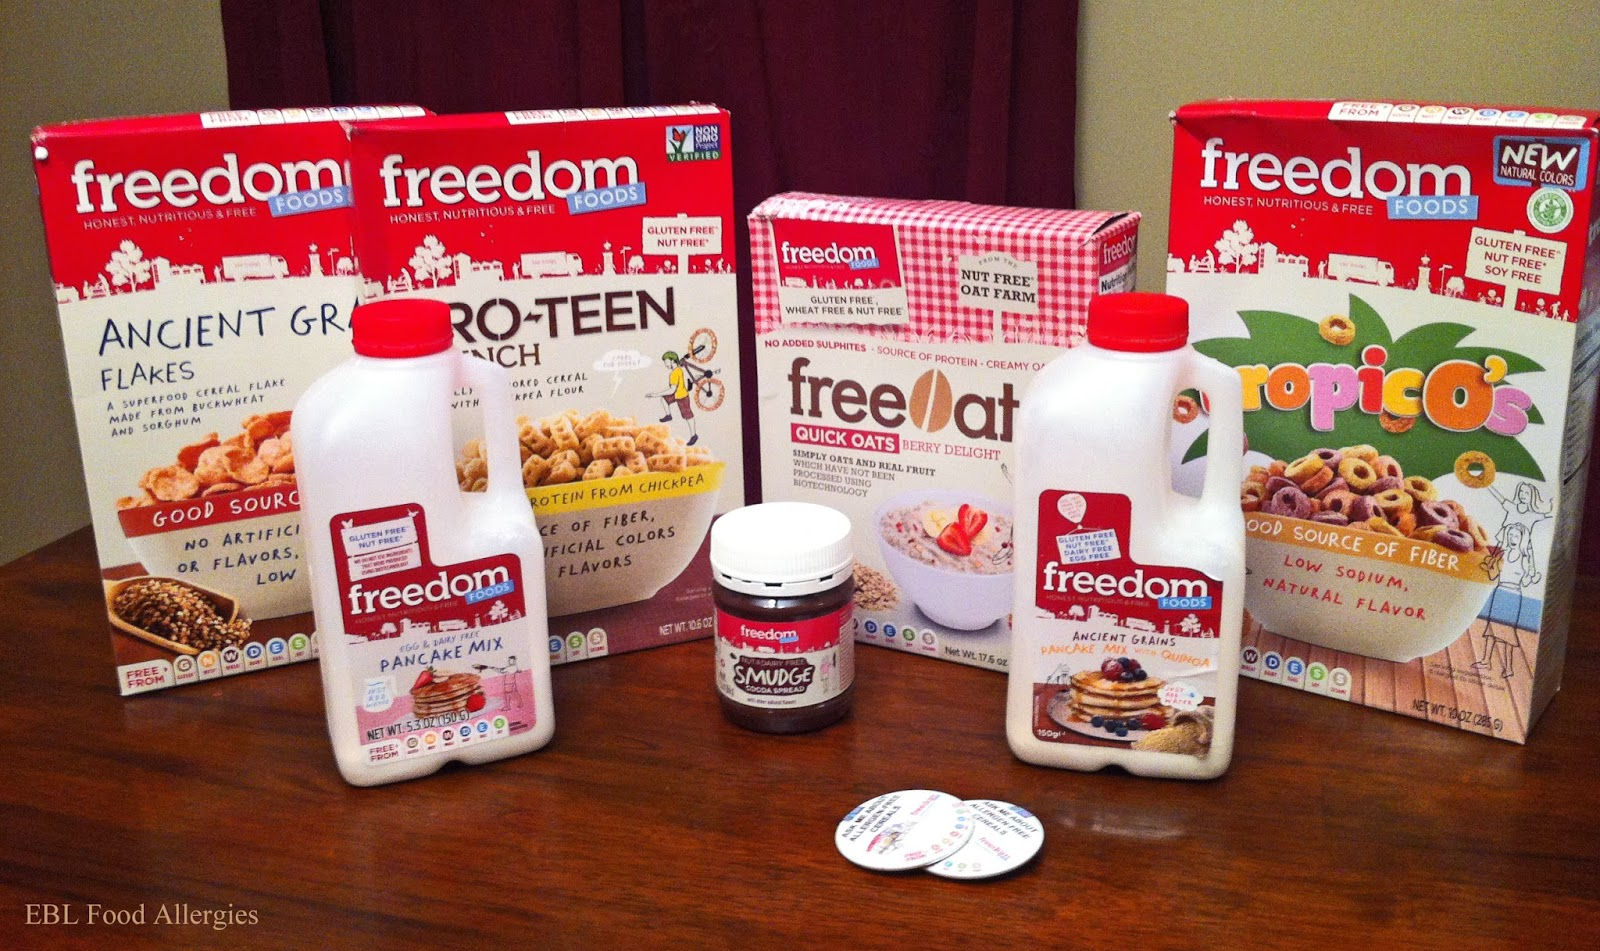 EBL Food Allergies: Freedom Foods, Allergy-Friendly Ancient Grain Flakes